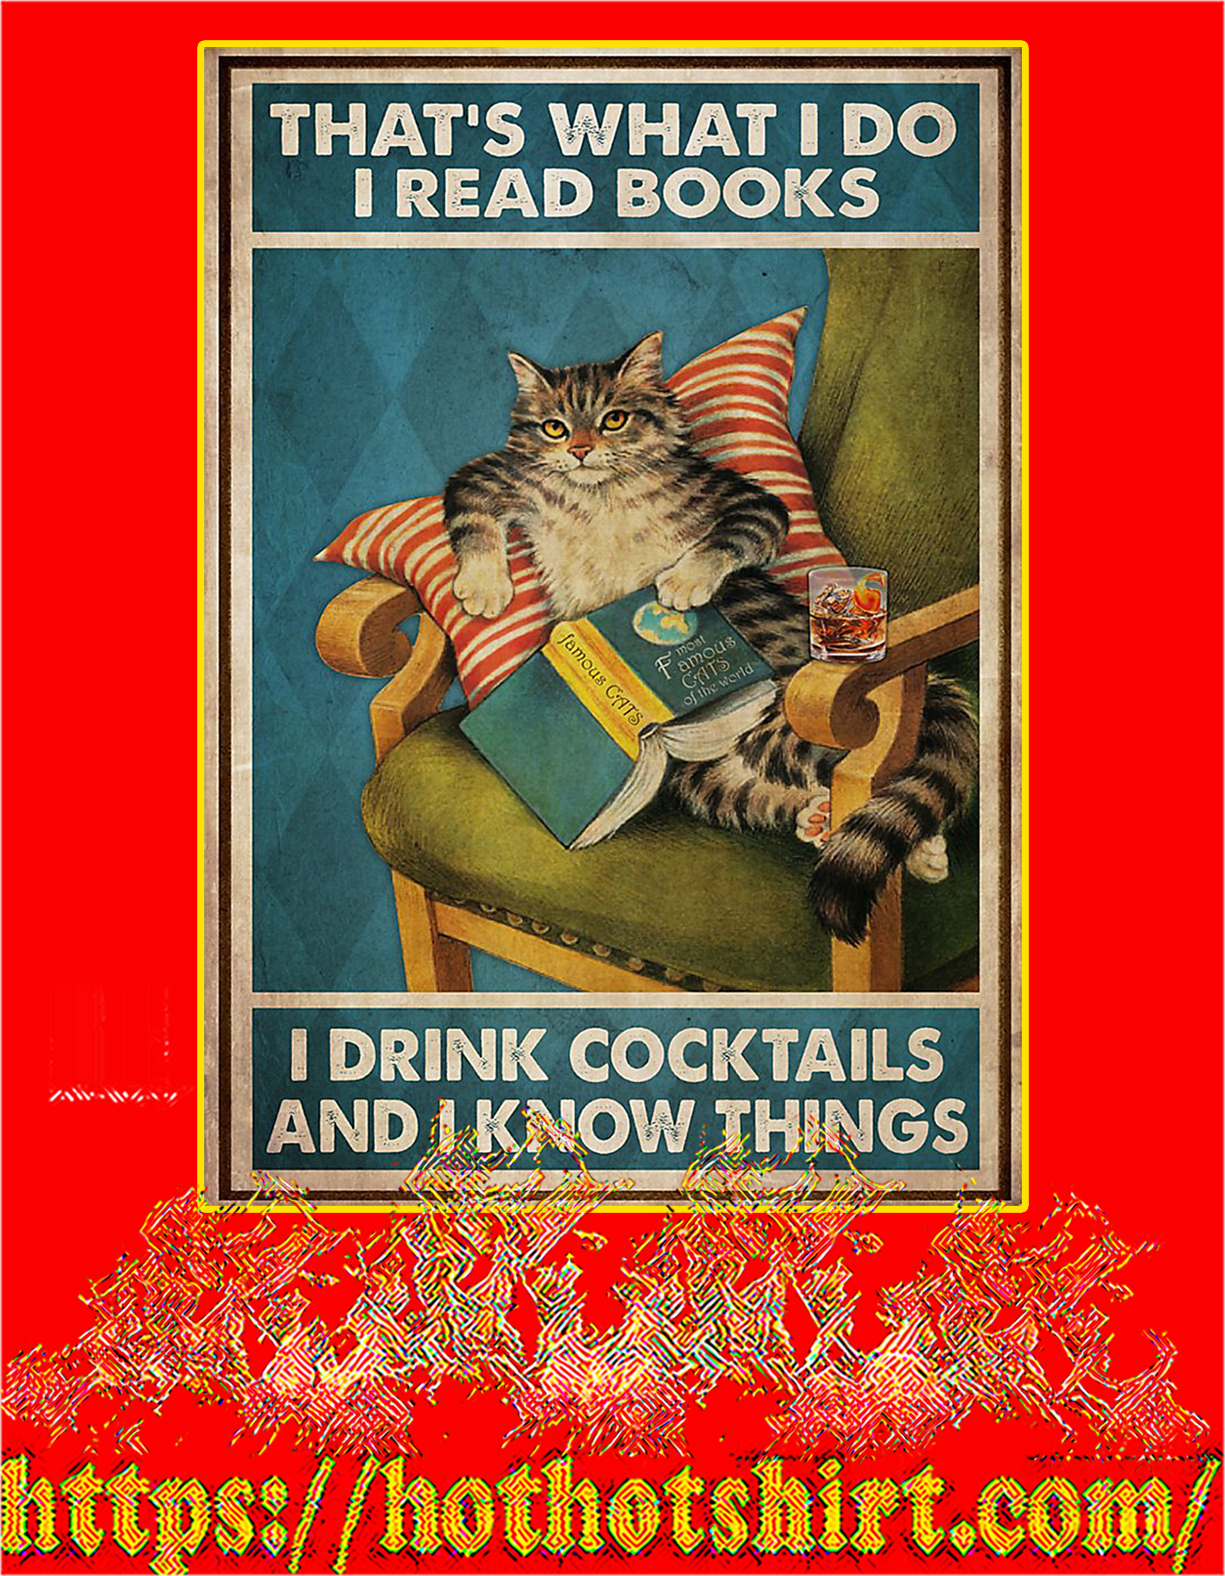 Cat That's what I do I read books I drink cocktails and I know things poster - A4